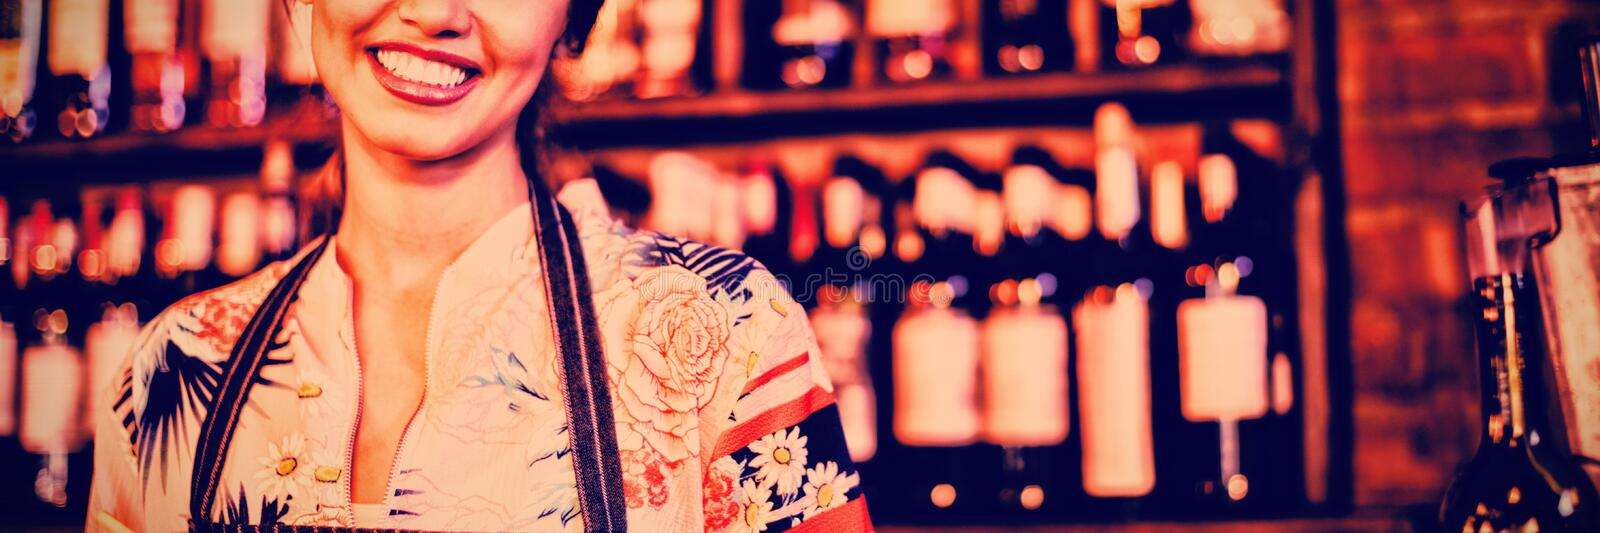 Portrait of waitress taking an order on notepad royalty free stock images